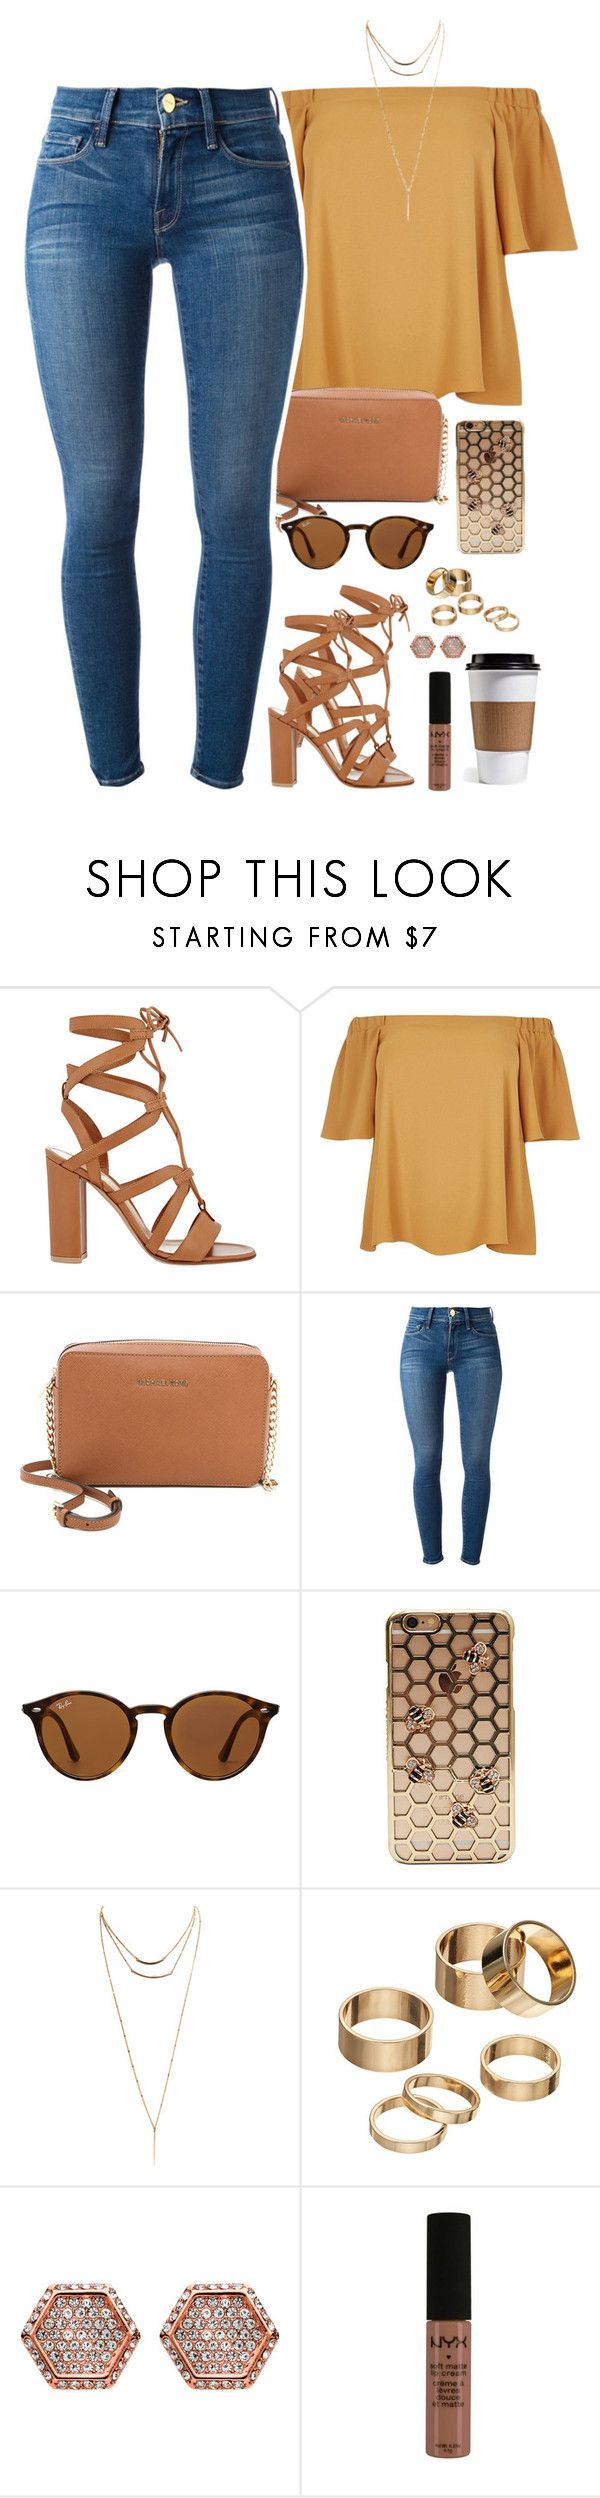 """""""already done with school"""" by daisym0nste ❤ liked on Polyvore featuring Gianvito Rossi, River Island, MICHAEL Michael Kors, Frame, Ray-Ban, Wet Seal, Apt. 9, Henri Bendel, NYX and plus size clothing"""